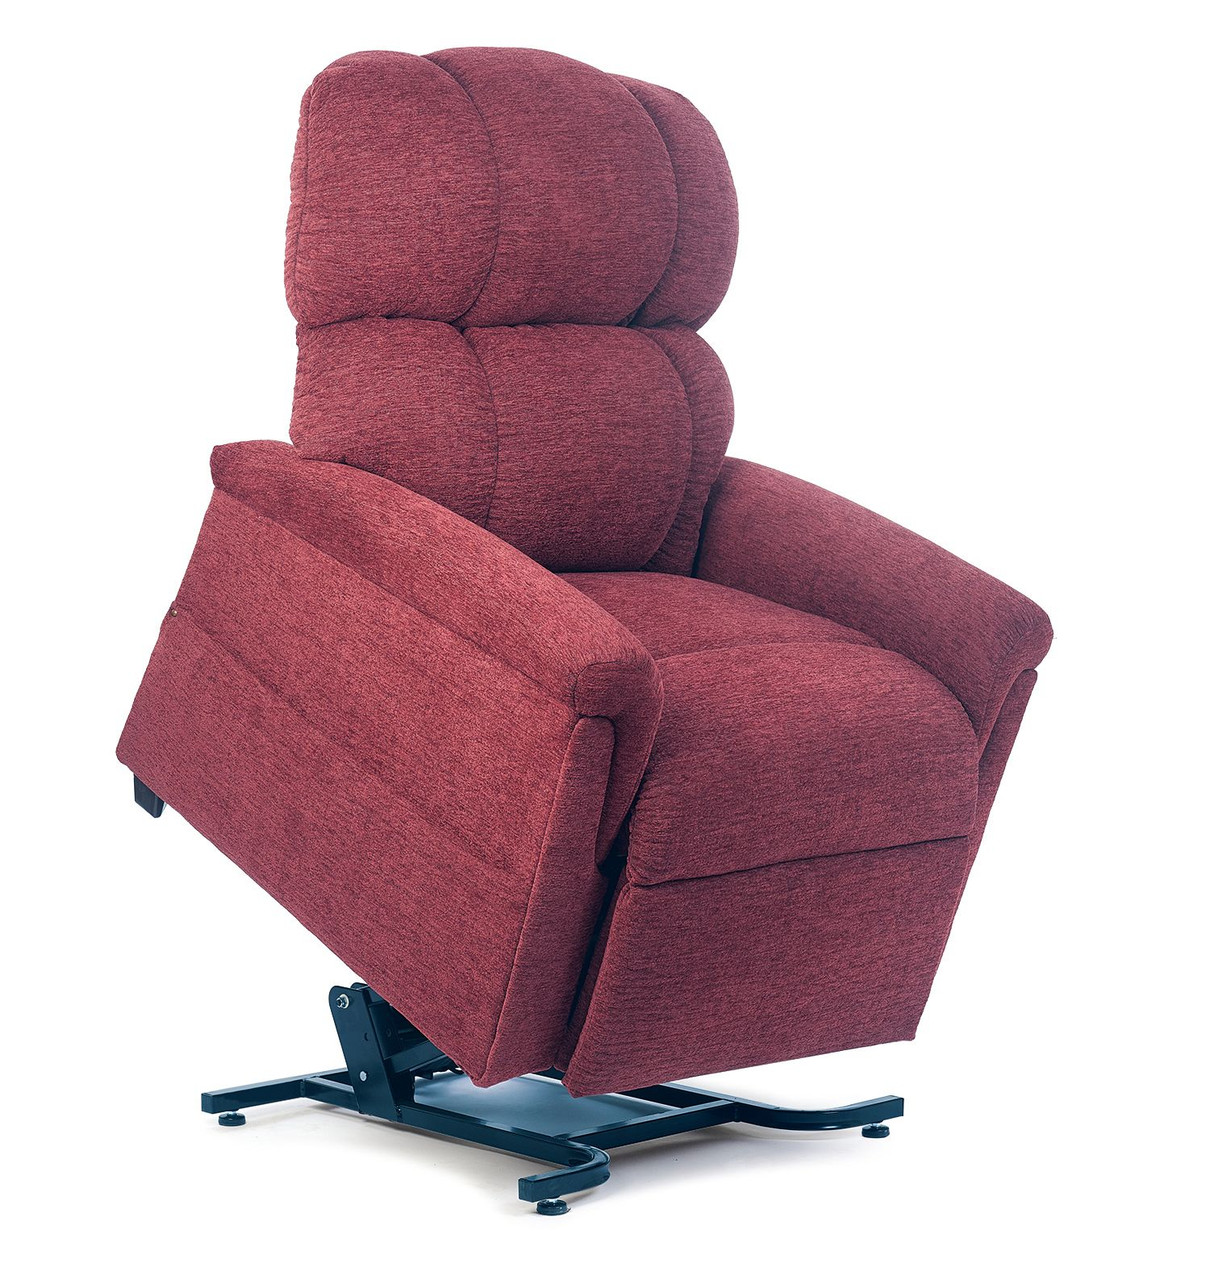 MaxiComforter Lift Chair in Port